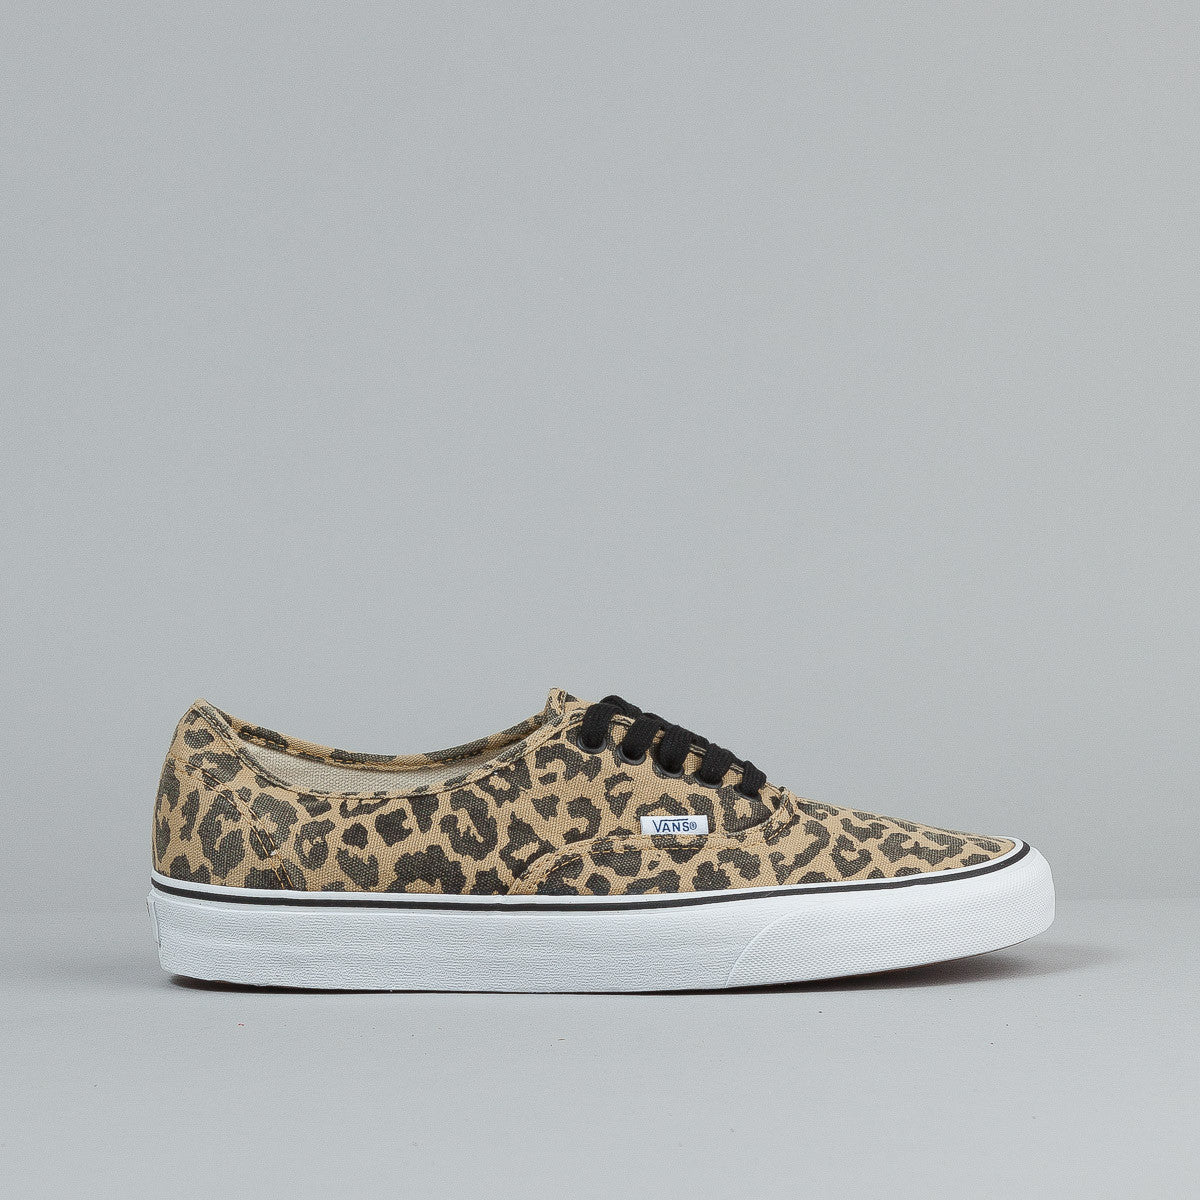 Vans Authentic (Van Doren) Leopard / Black